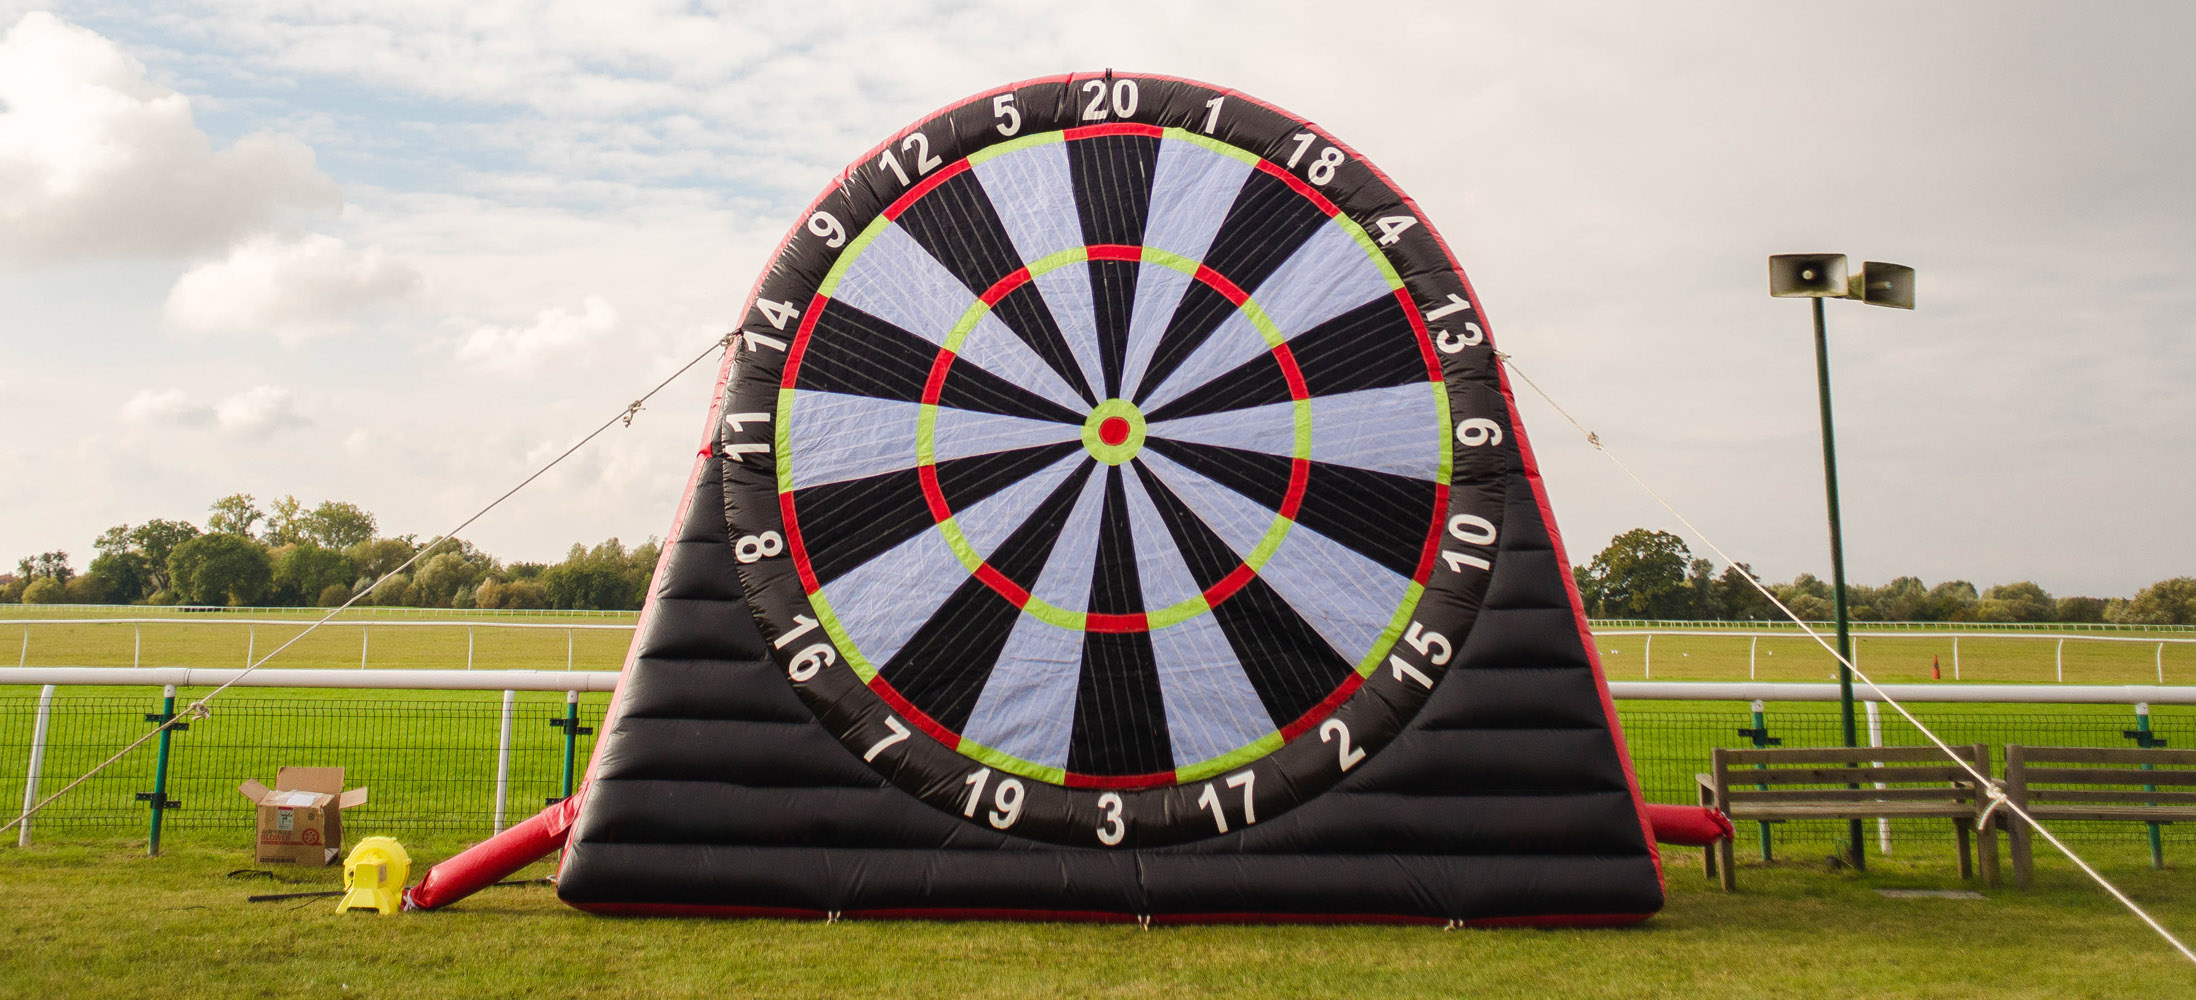 Stag Party Ideas - Top 7 - Football Darts